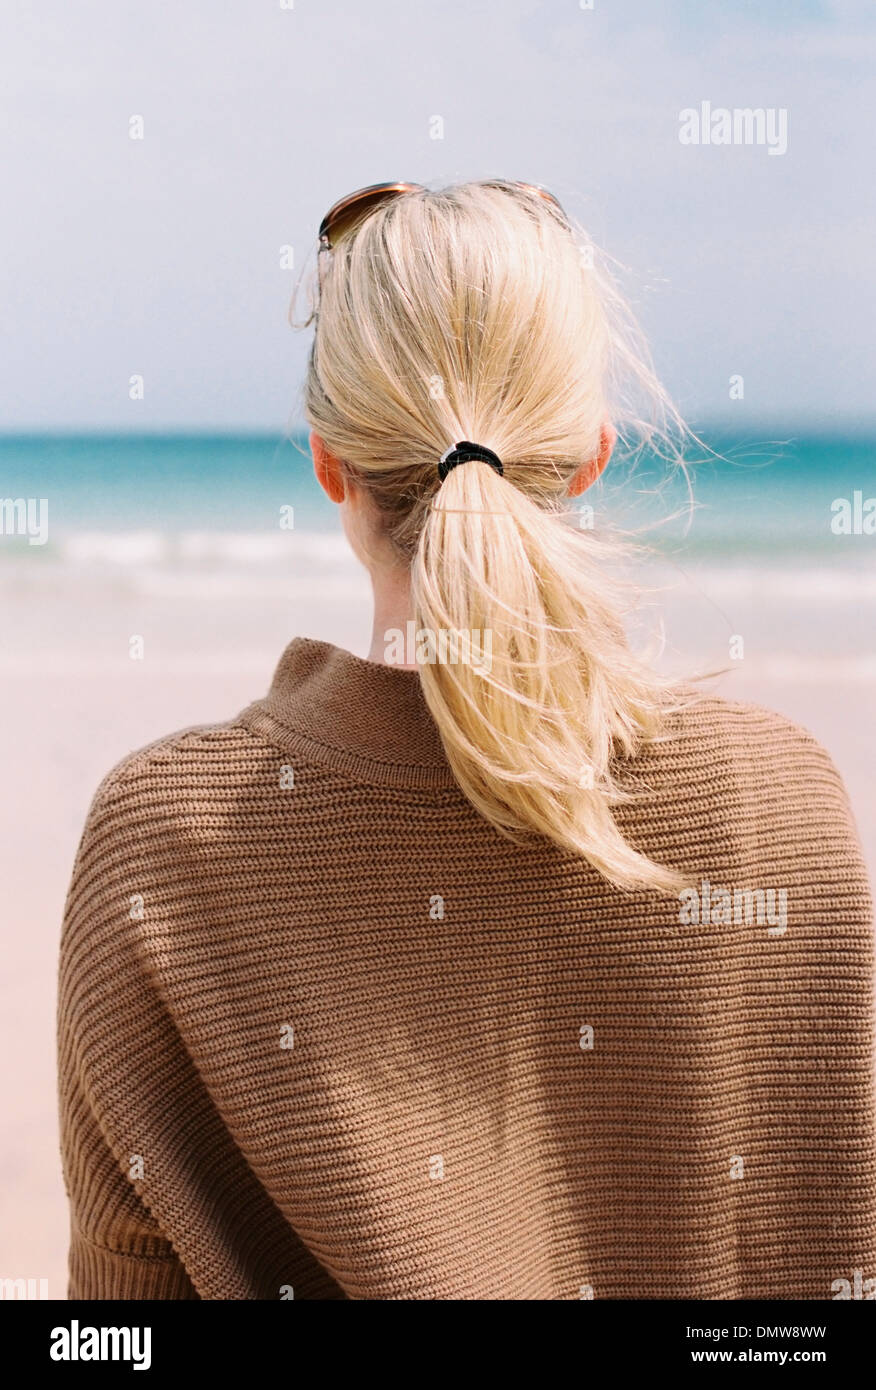 A blonde haired woman looking out to sea from  shore. - Stock Image